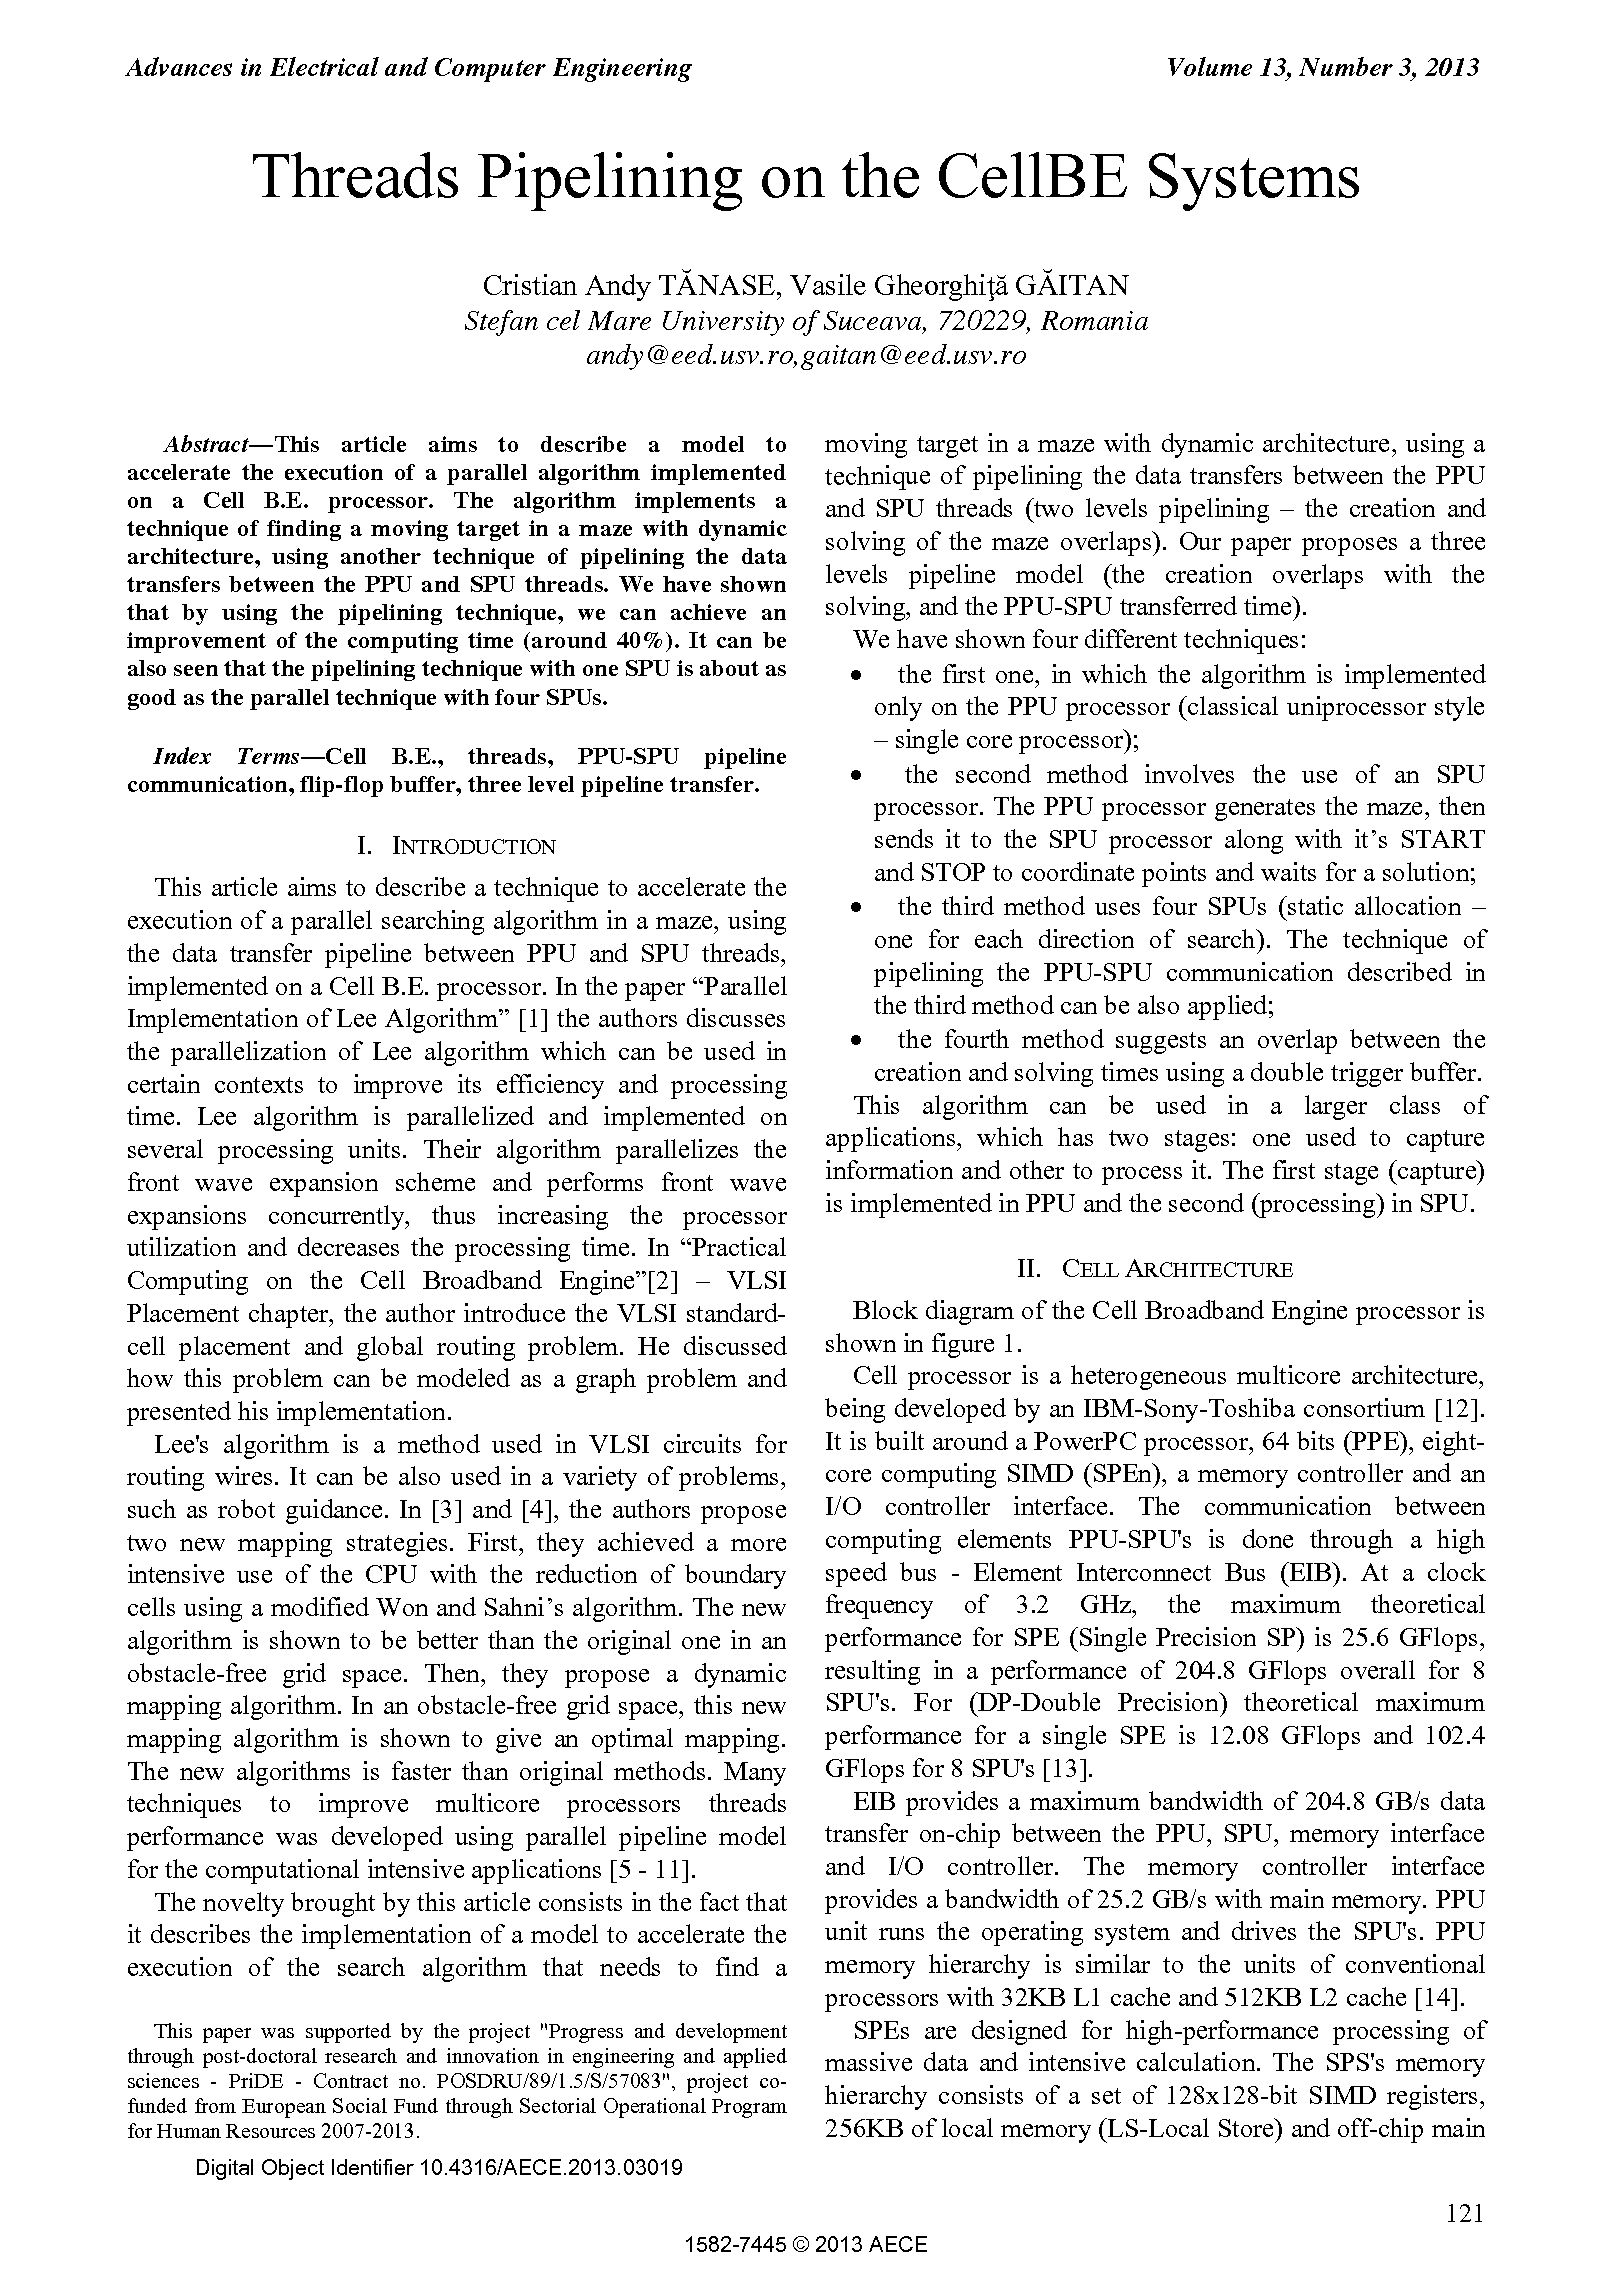 PDF Quickview for paper with DOI:10.4316/AECE.2013.03019